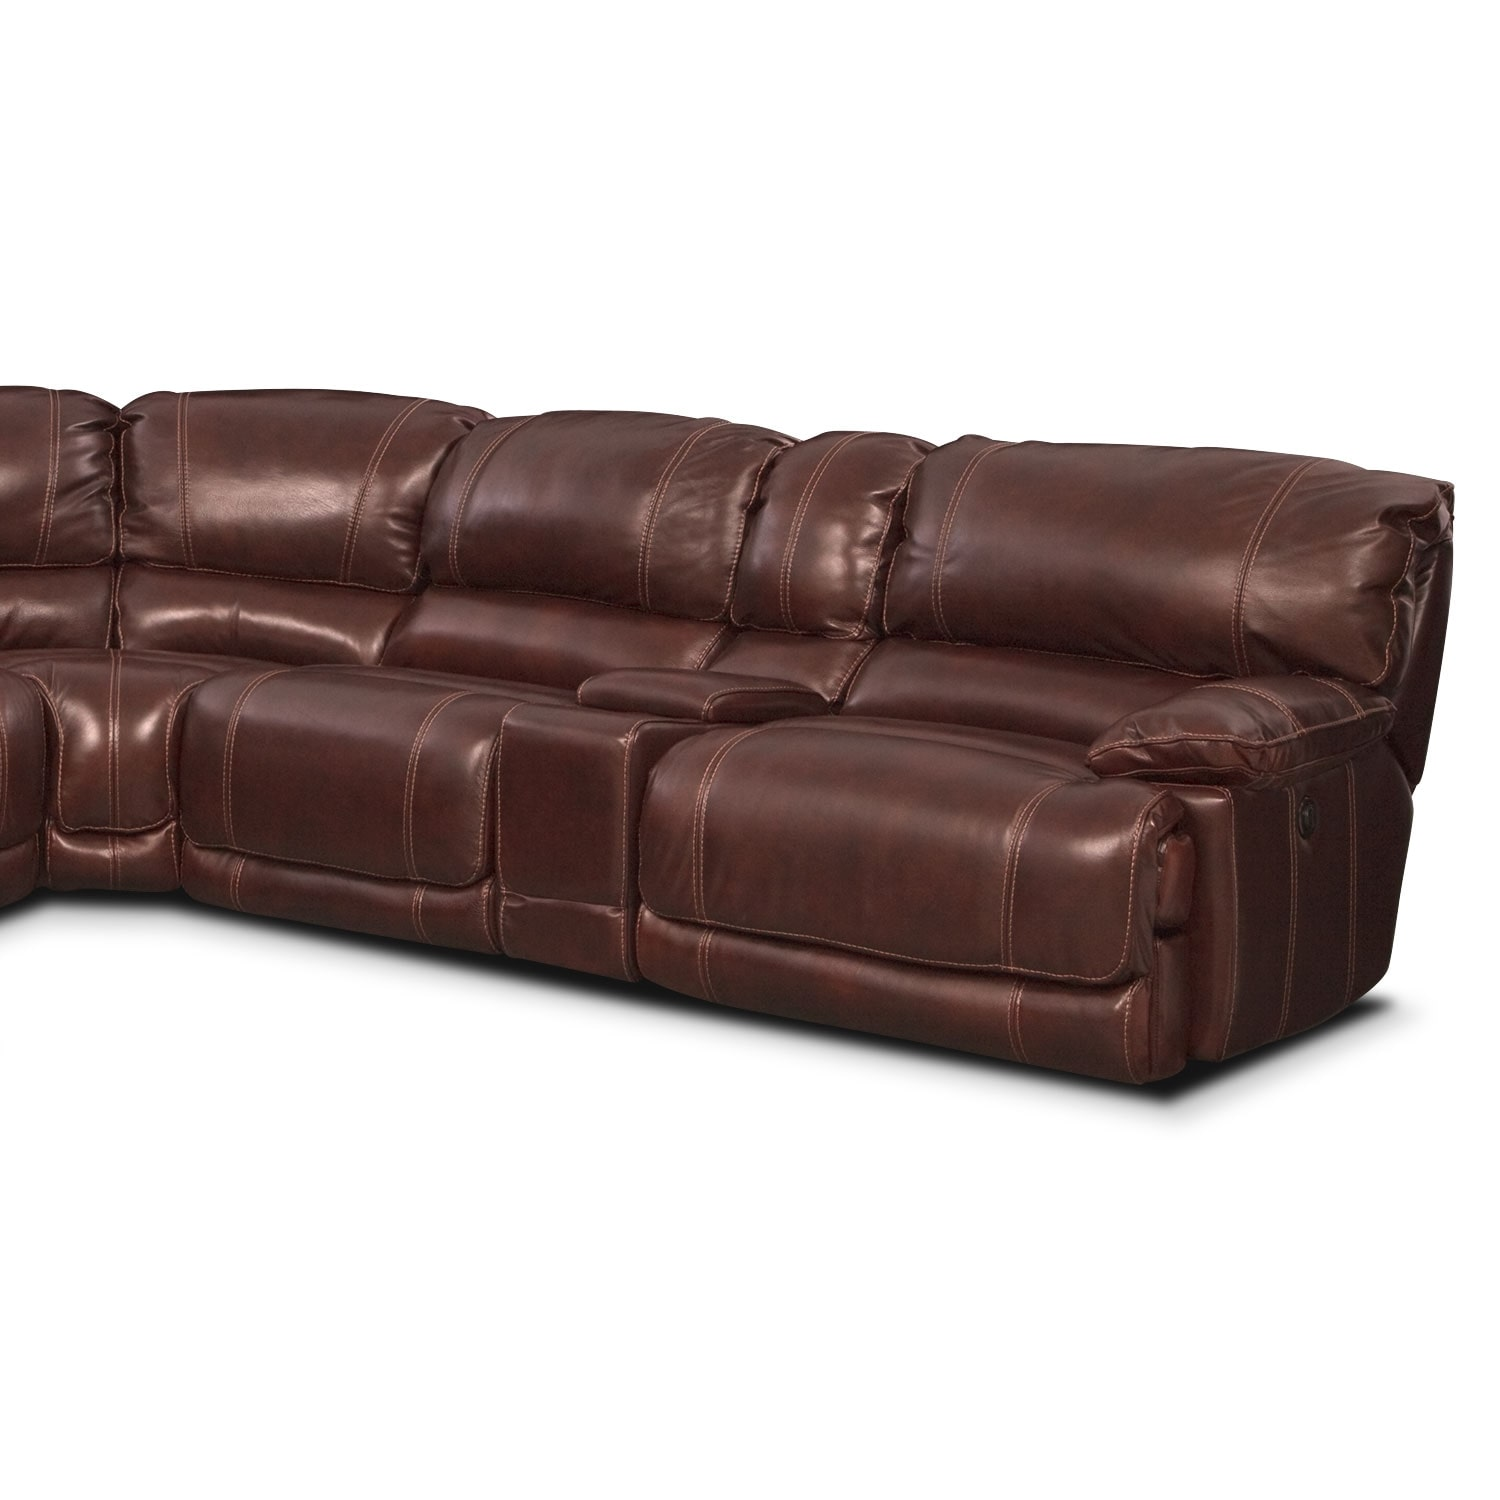 St malo 6 piece power reclining sectional with left for Burgundy leather chaise